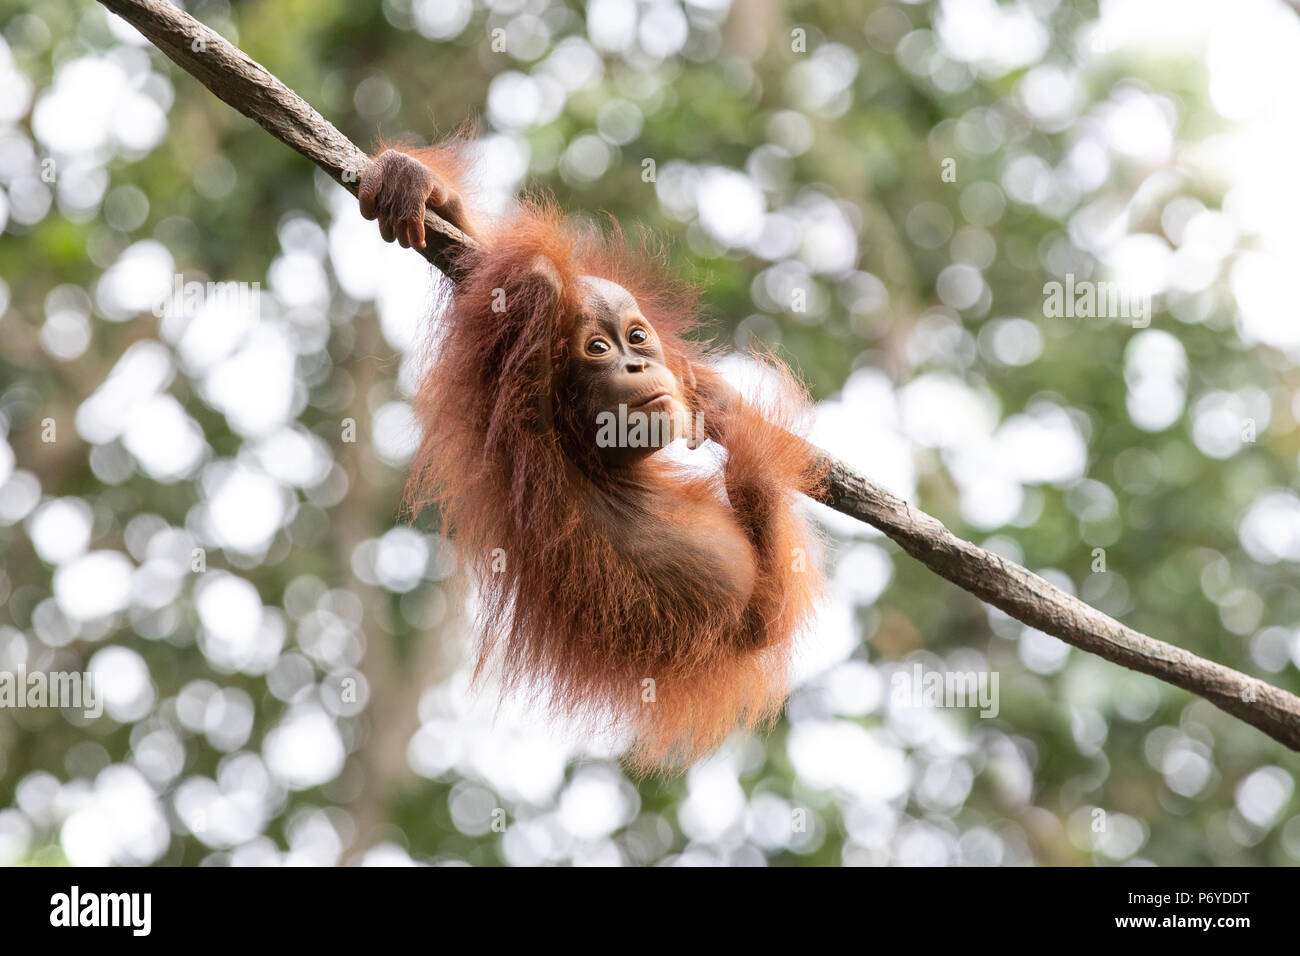 Portrait of a cute baby orangutan having fun in the greenery of a rainforest. Singapore. Stock Photo